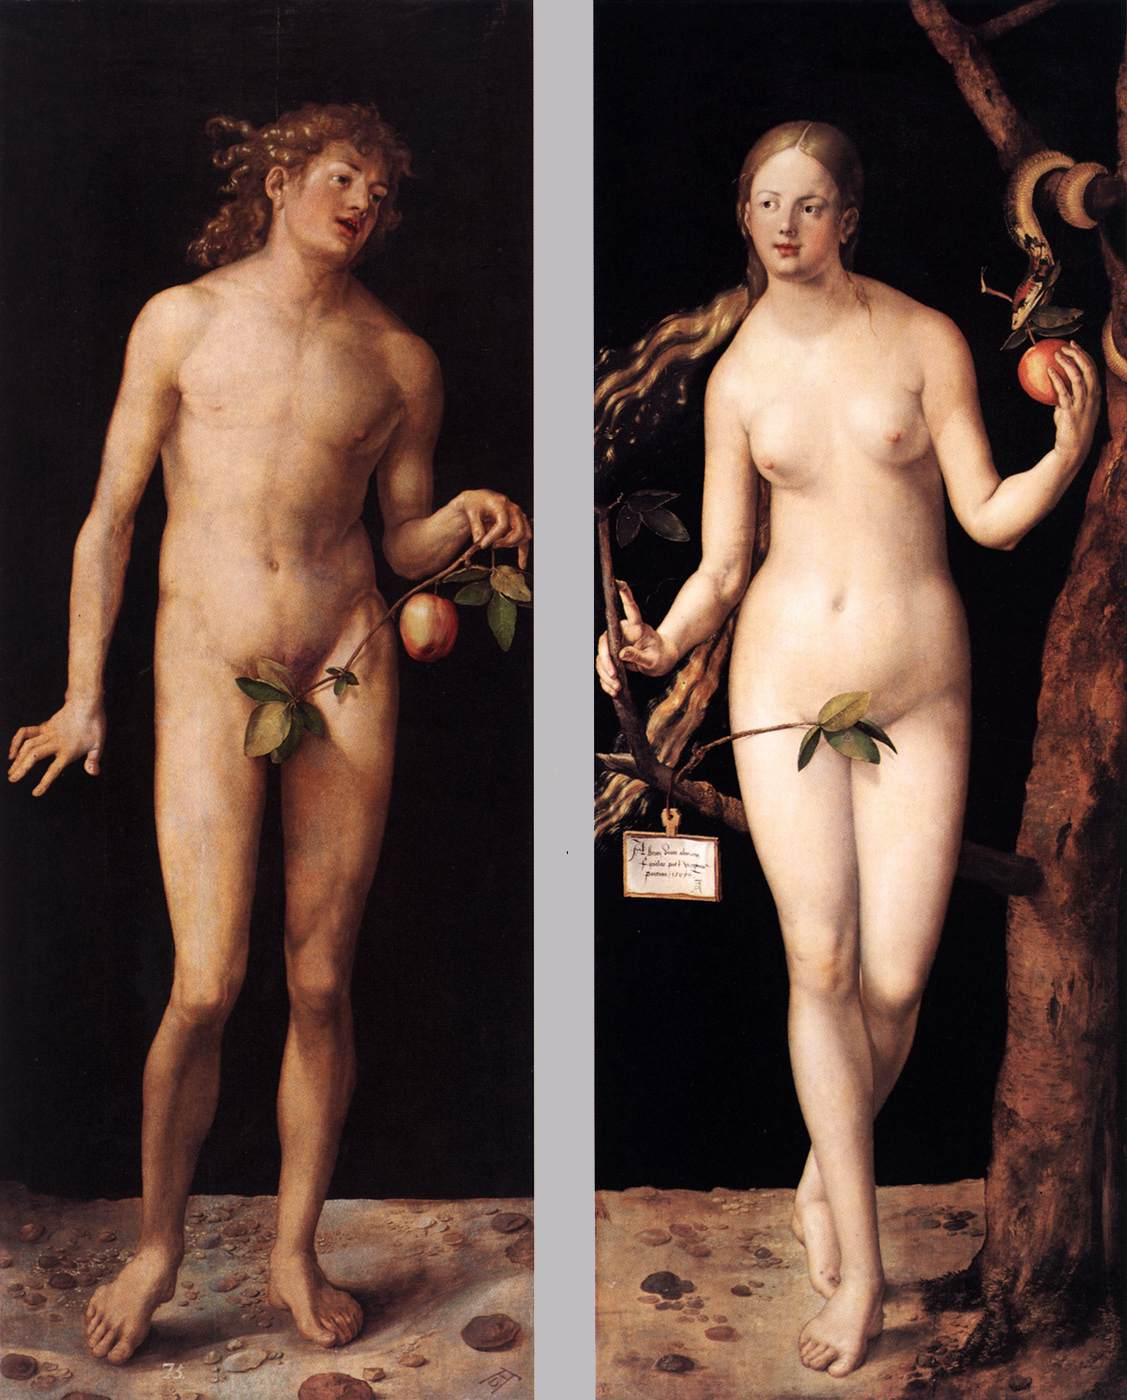 Adam and eve in garden of eden studying genesis chapter 2 6